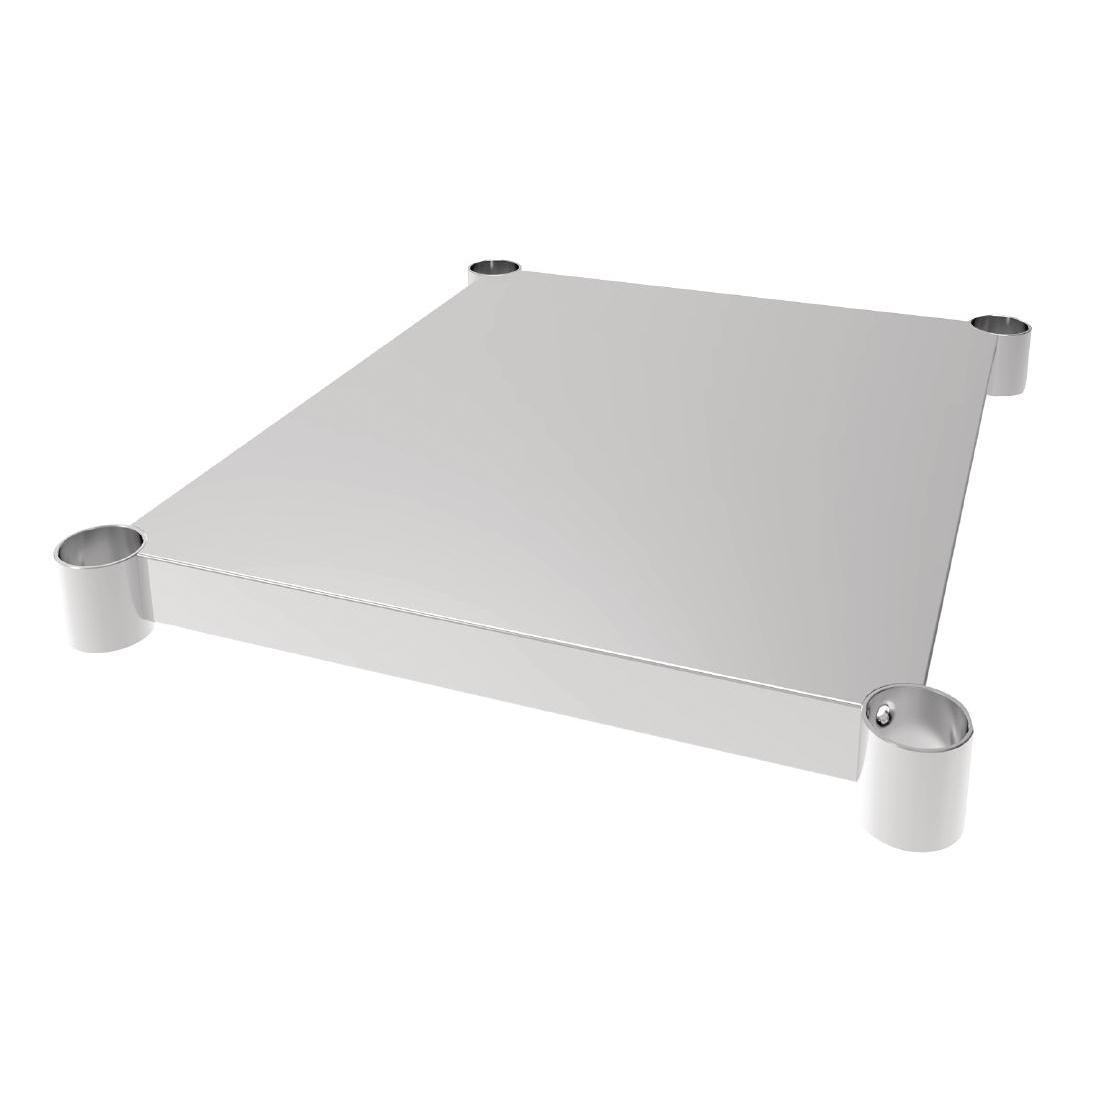 Vogue Stainless Steel Table Shelf 700x600mm - Each - CP835